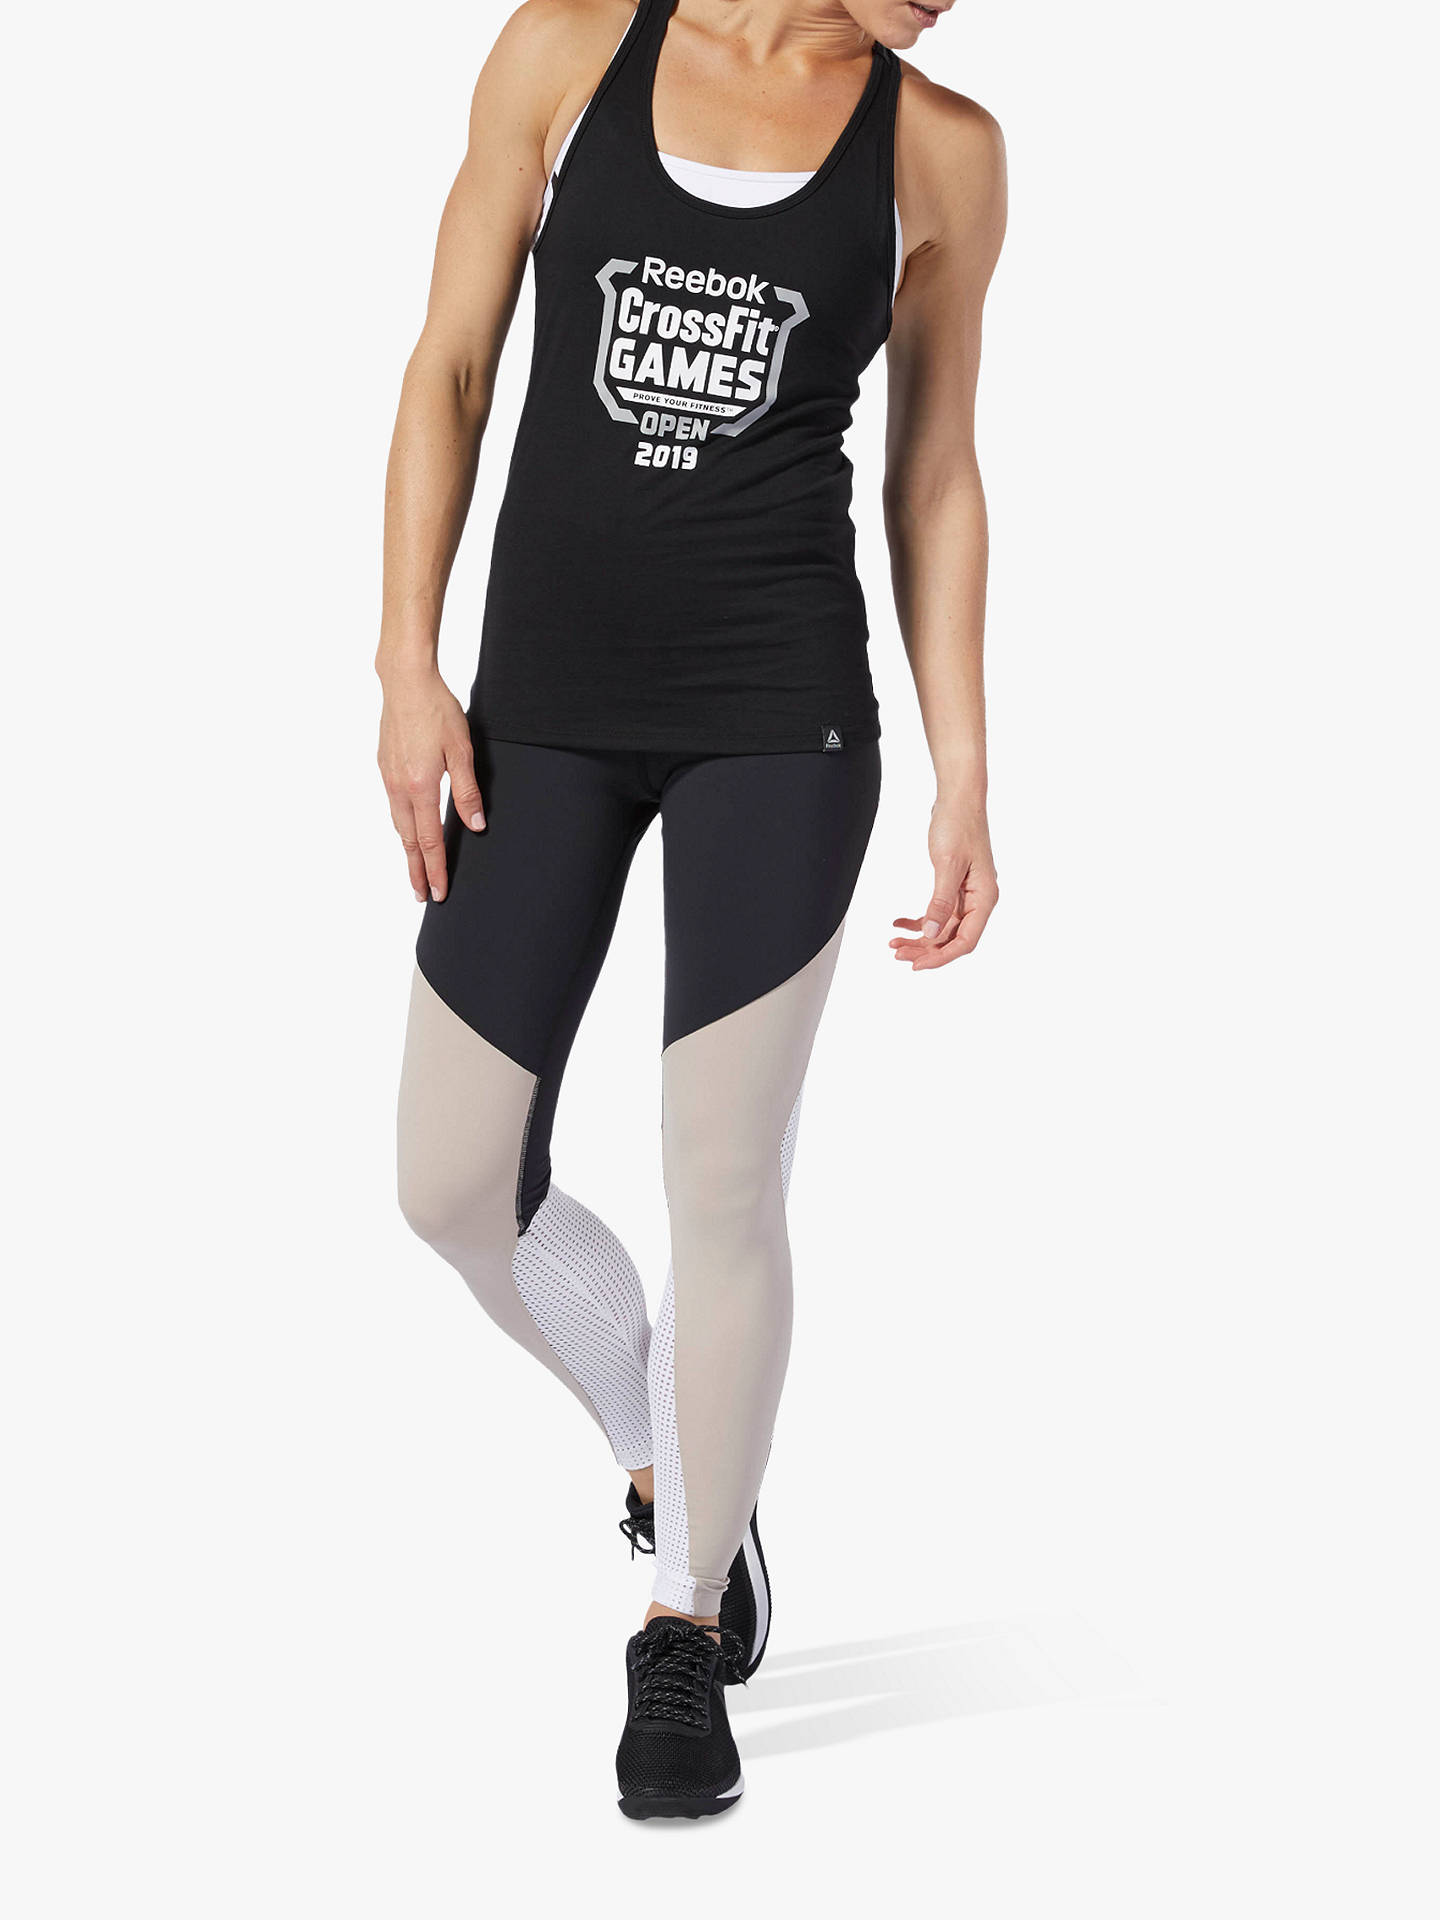 1263fe1af1 Buy Reebok Lux Colour Block Training Tights, Black, XS Online at  johnlewis.com ...